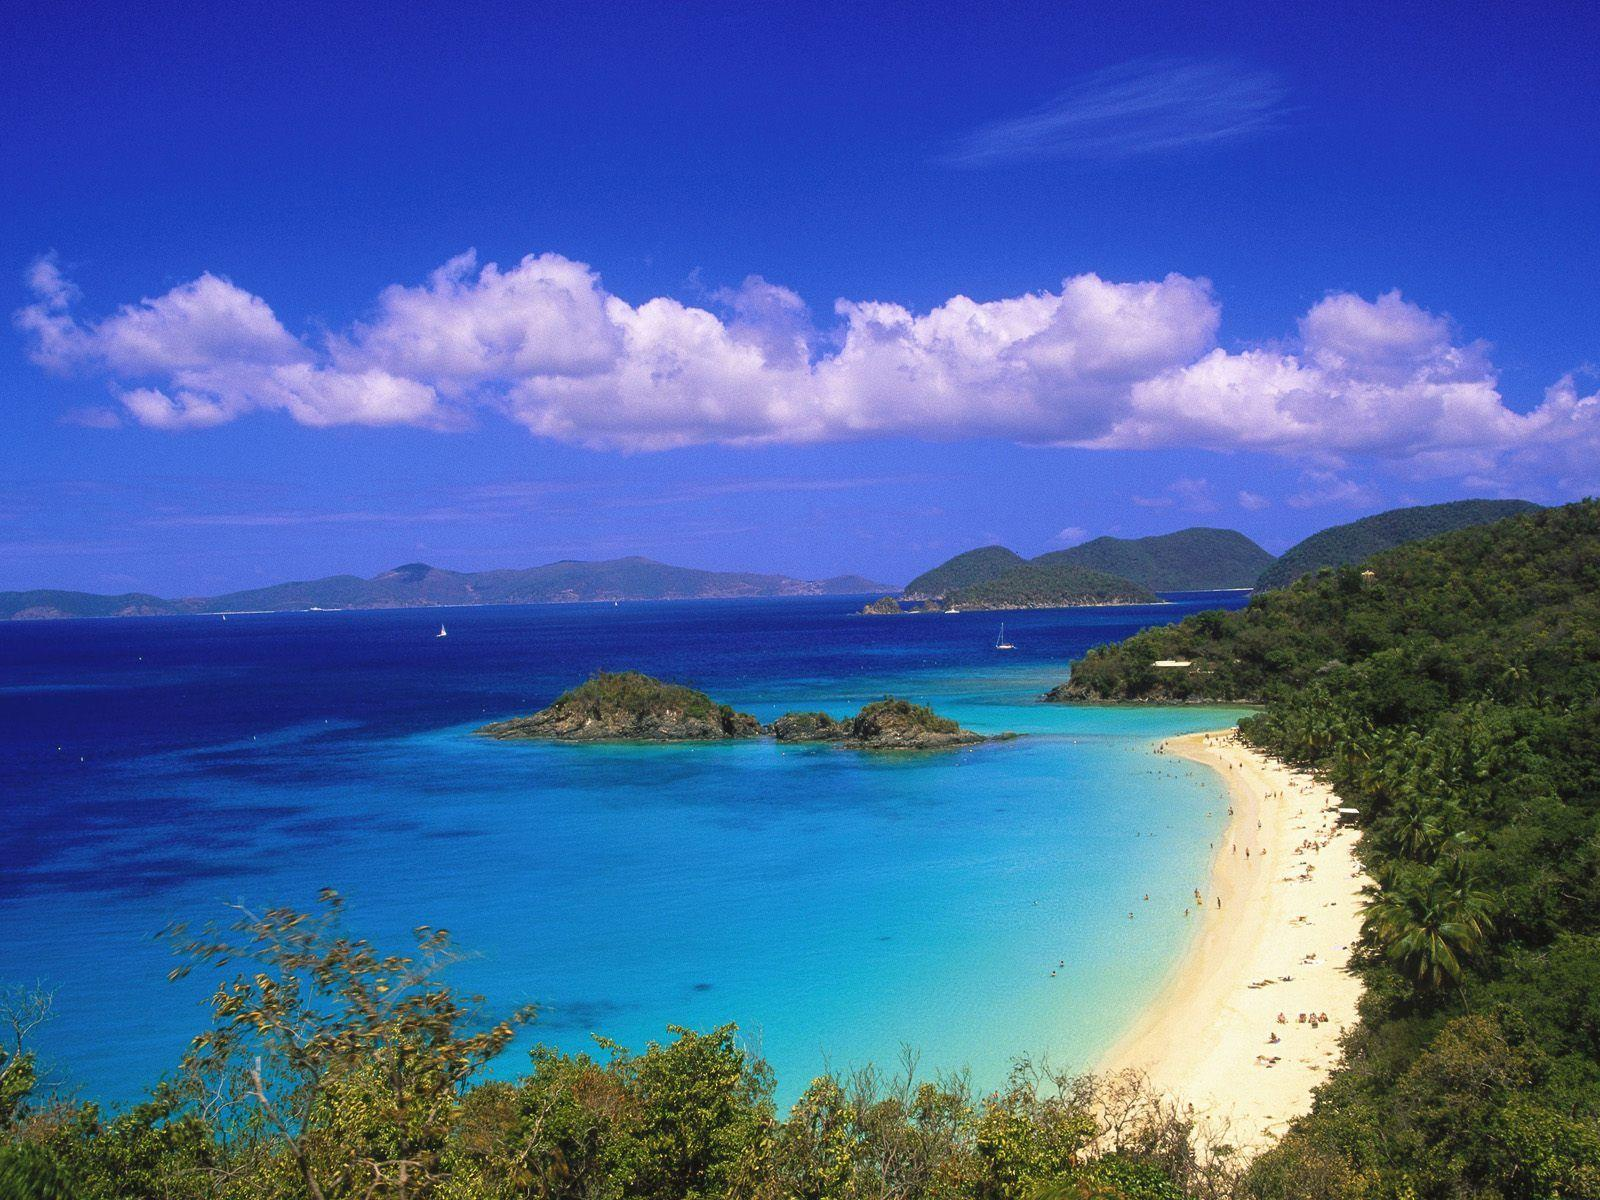 St. John, US Virgin Islands - the Love City |